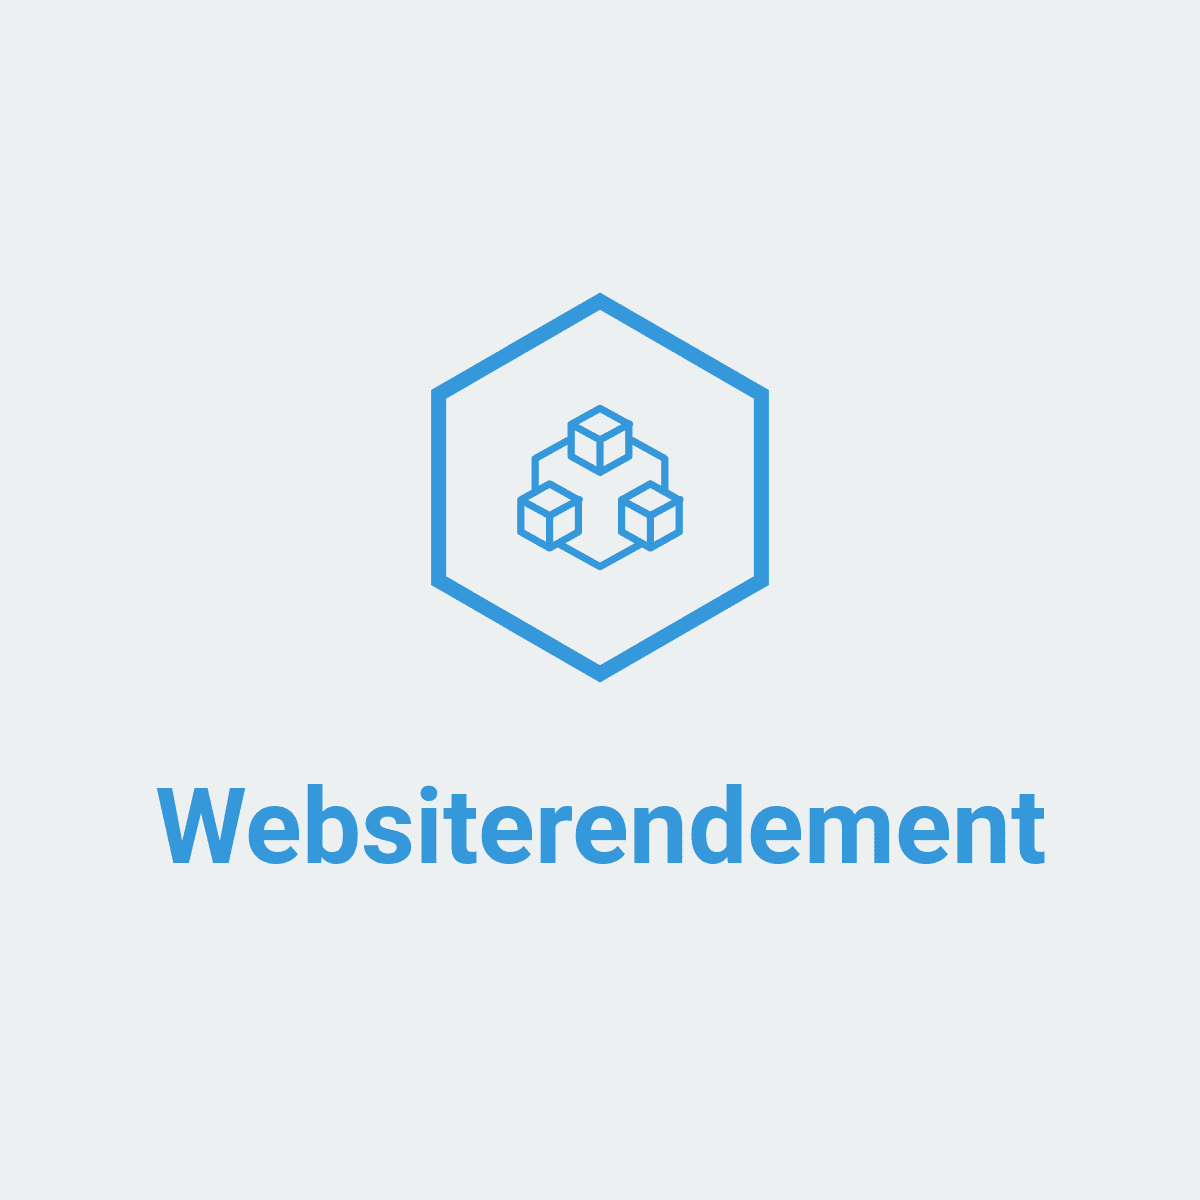 Websiterendement